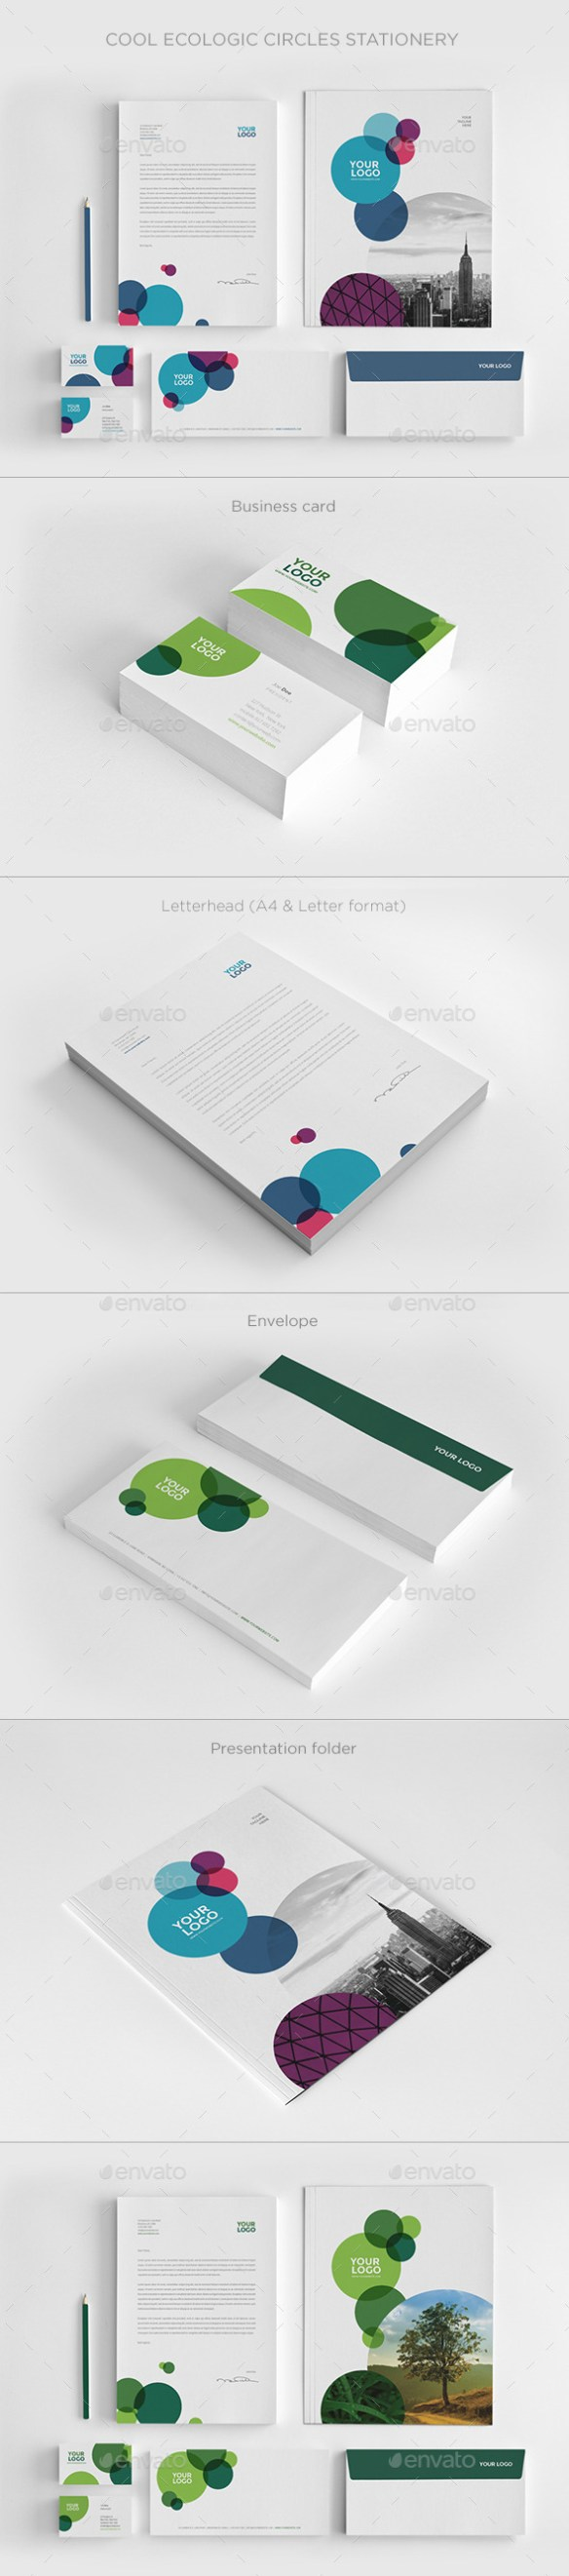 Cool Ecologic Circles Stationery - Stationery Print Templates